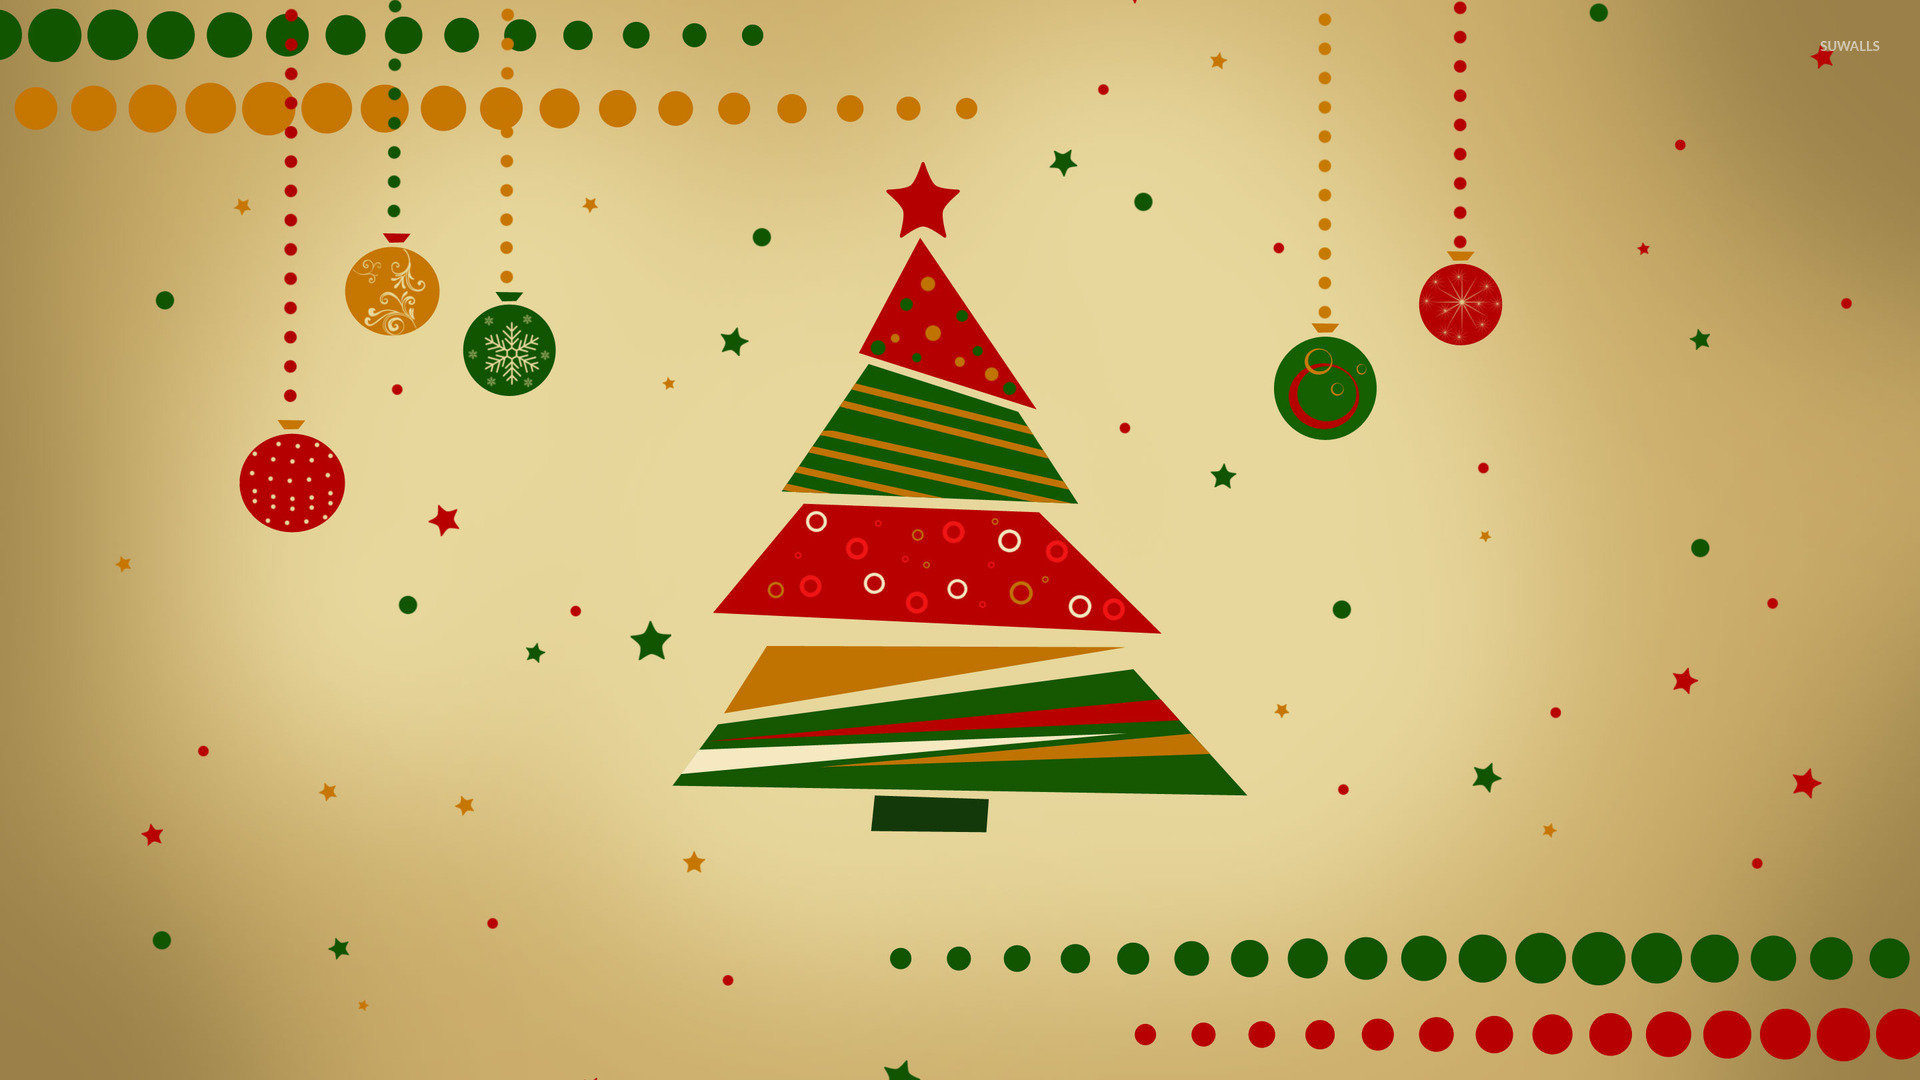 Retro Christmas tree wallpaper - Holiday wallpapers - #25549